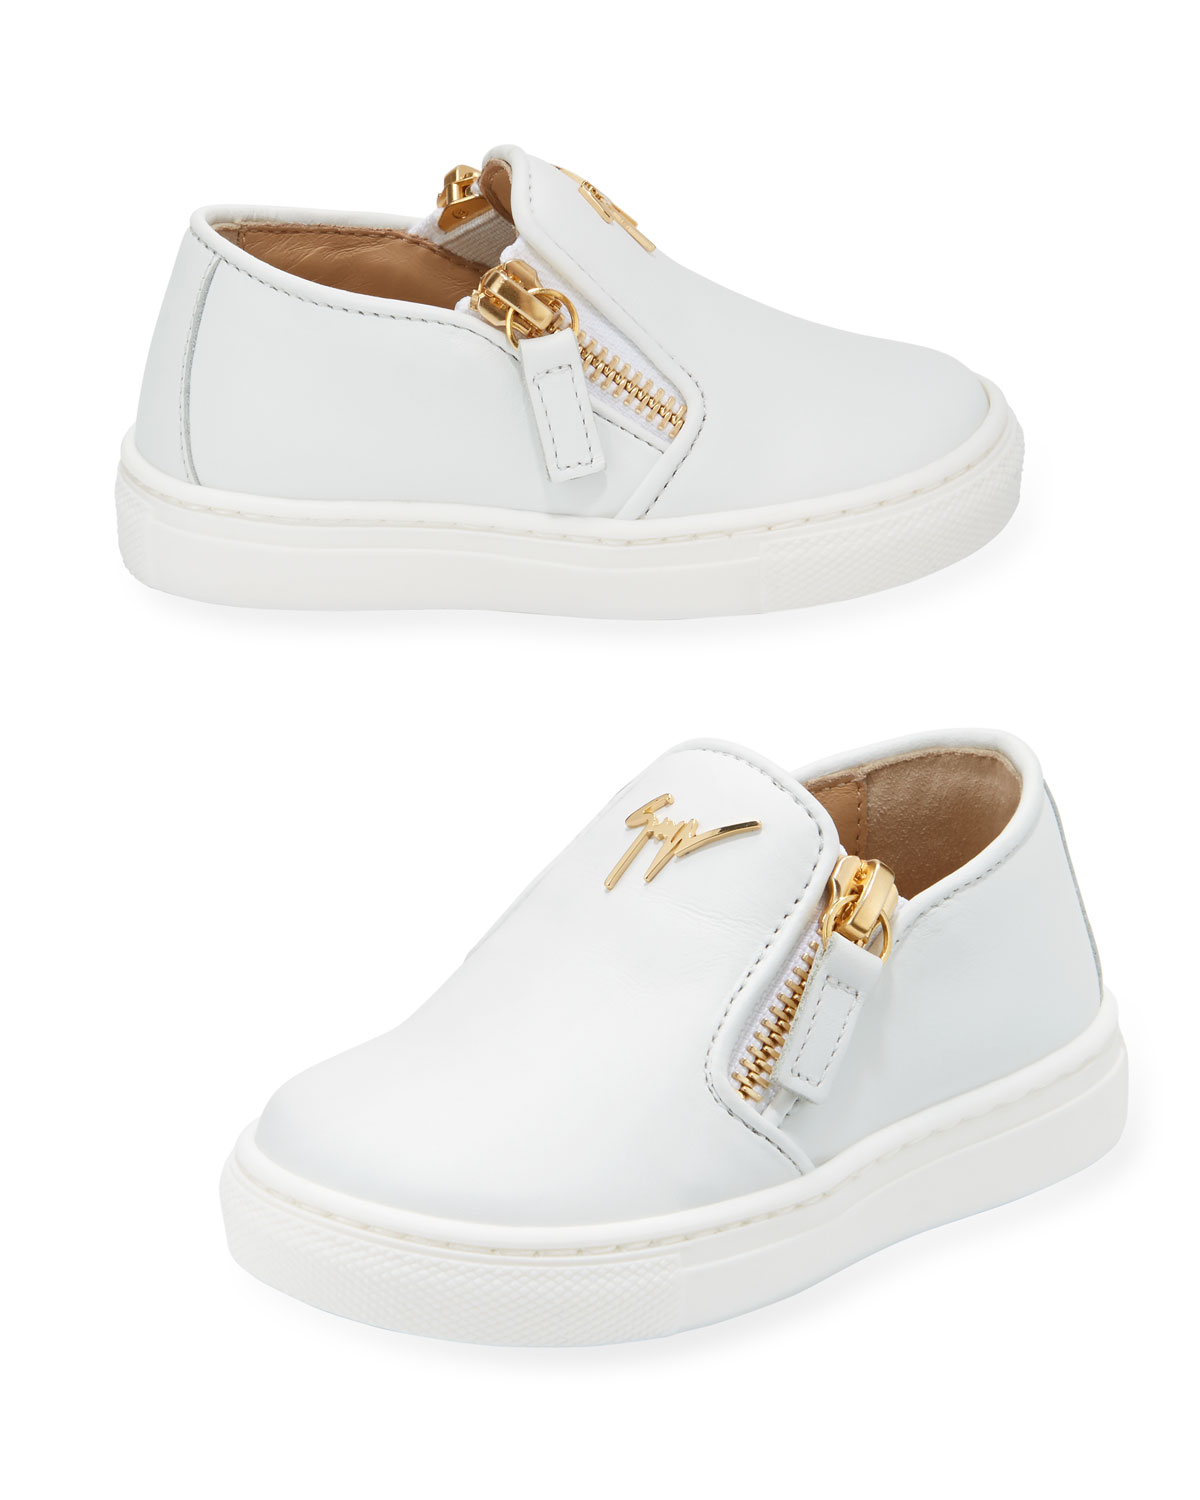 Girls London Laceless Leather LowTop Sneaker InfantToddler Sizes 6M9T